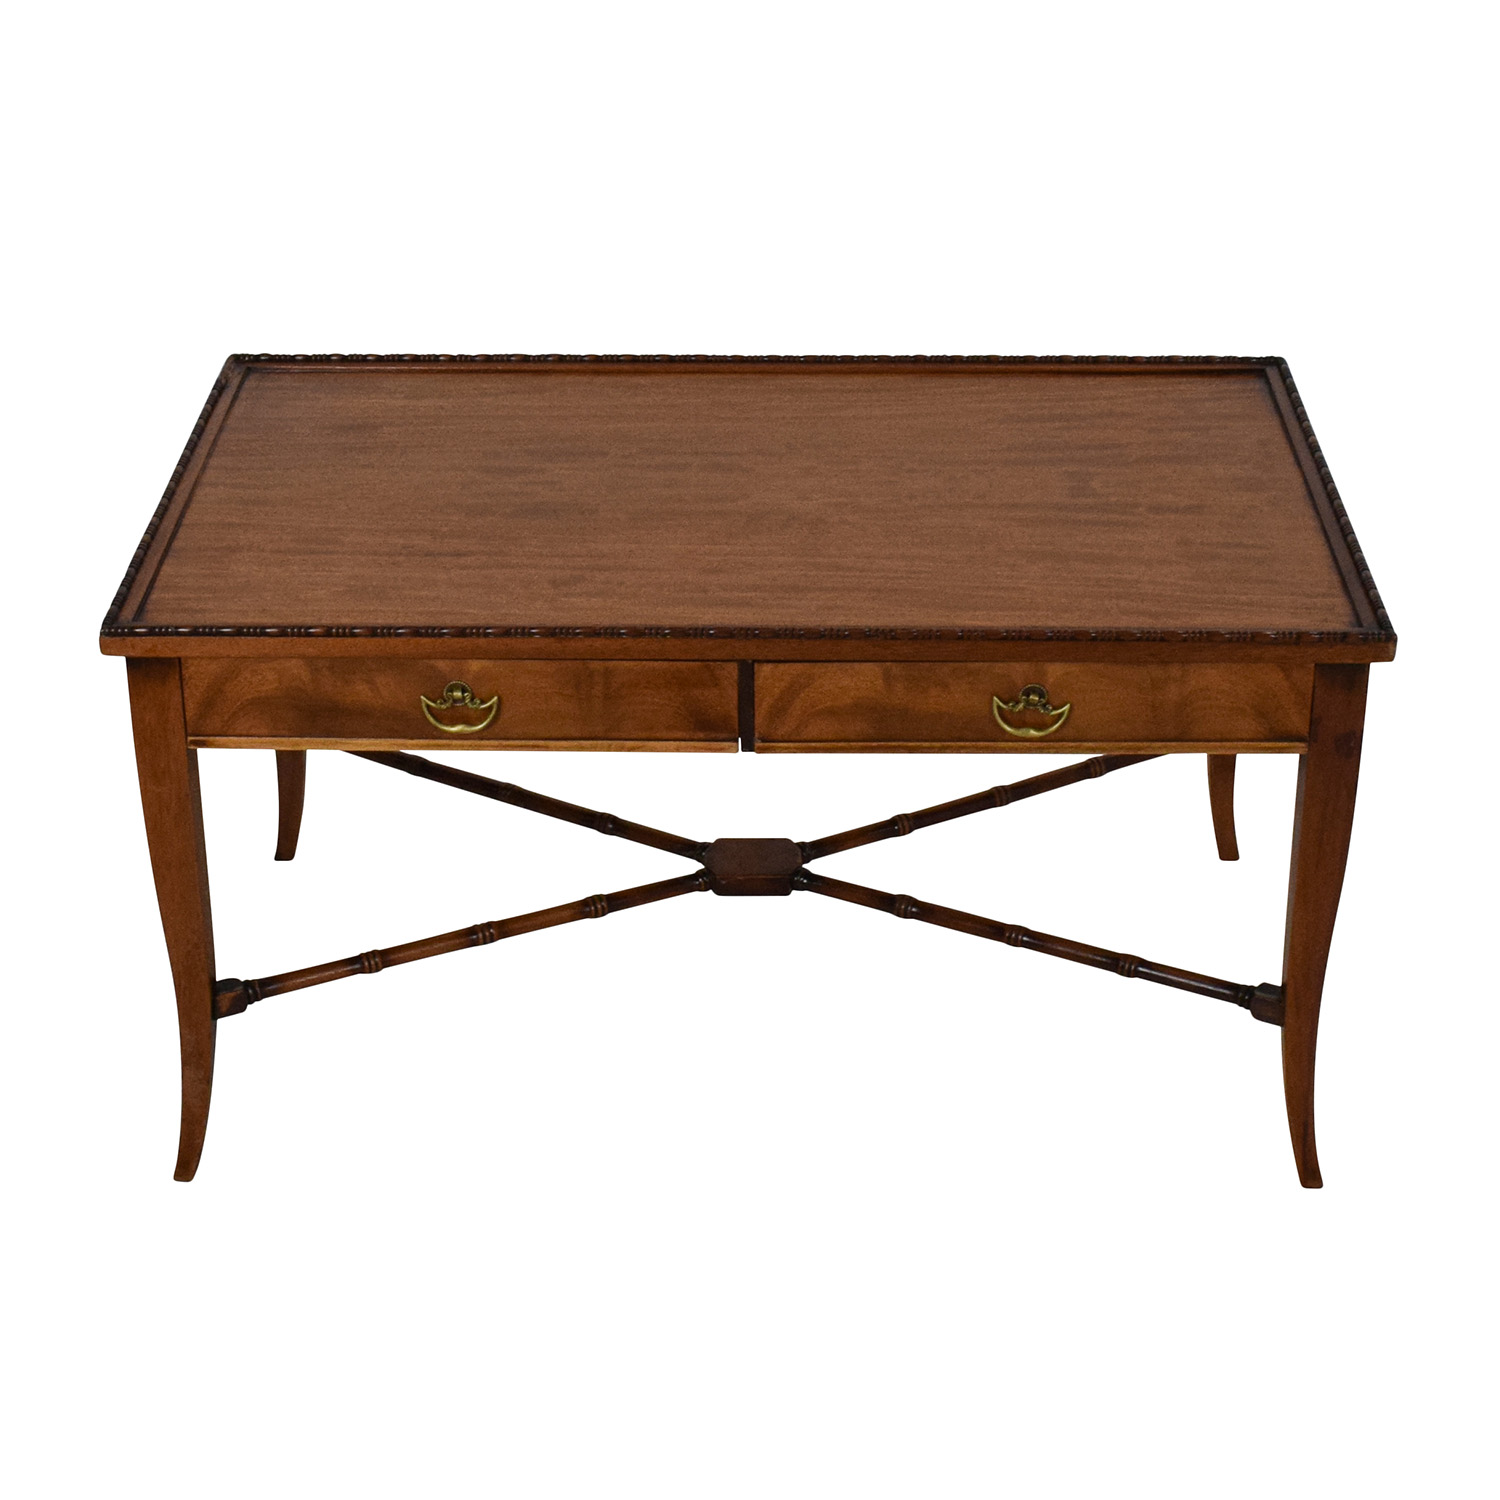 Imperial Grand Rapids Imperial Grand Rapids Mahogany Coffee Table on sale